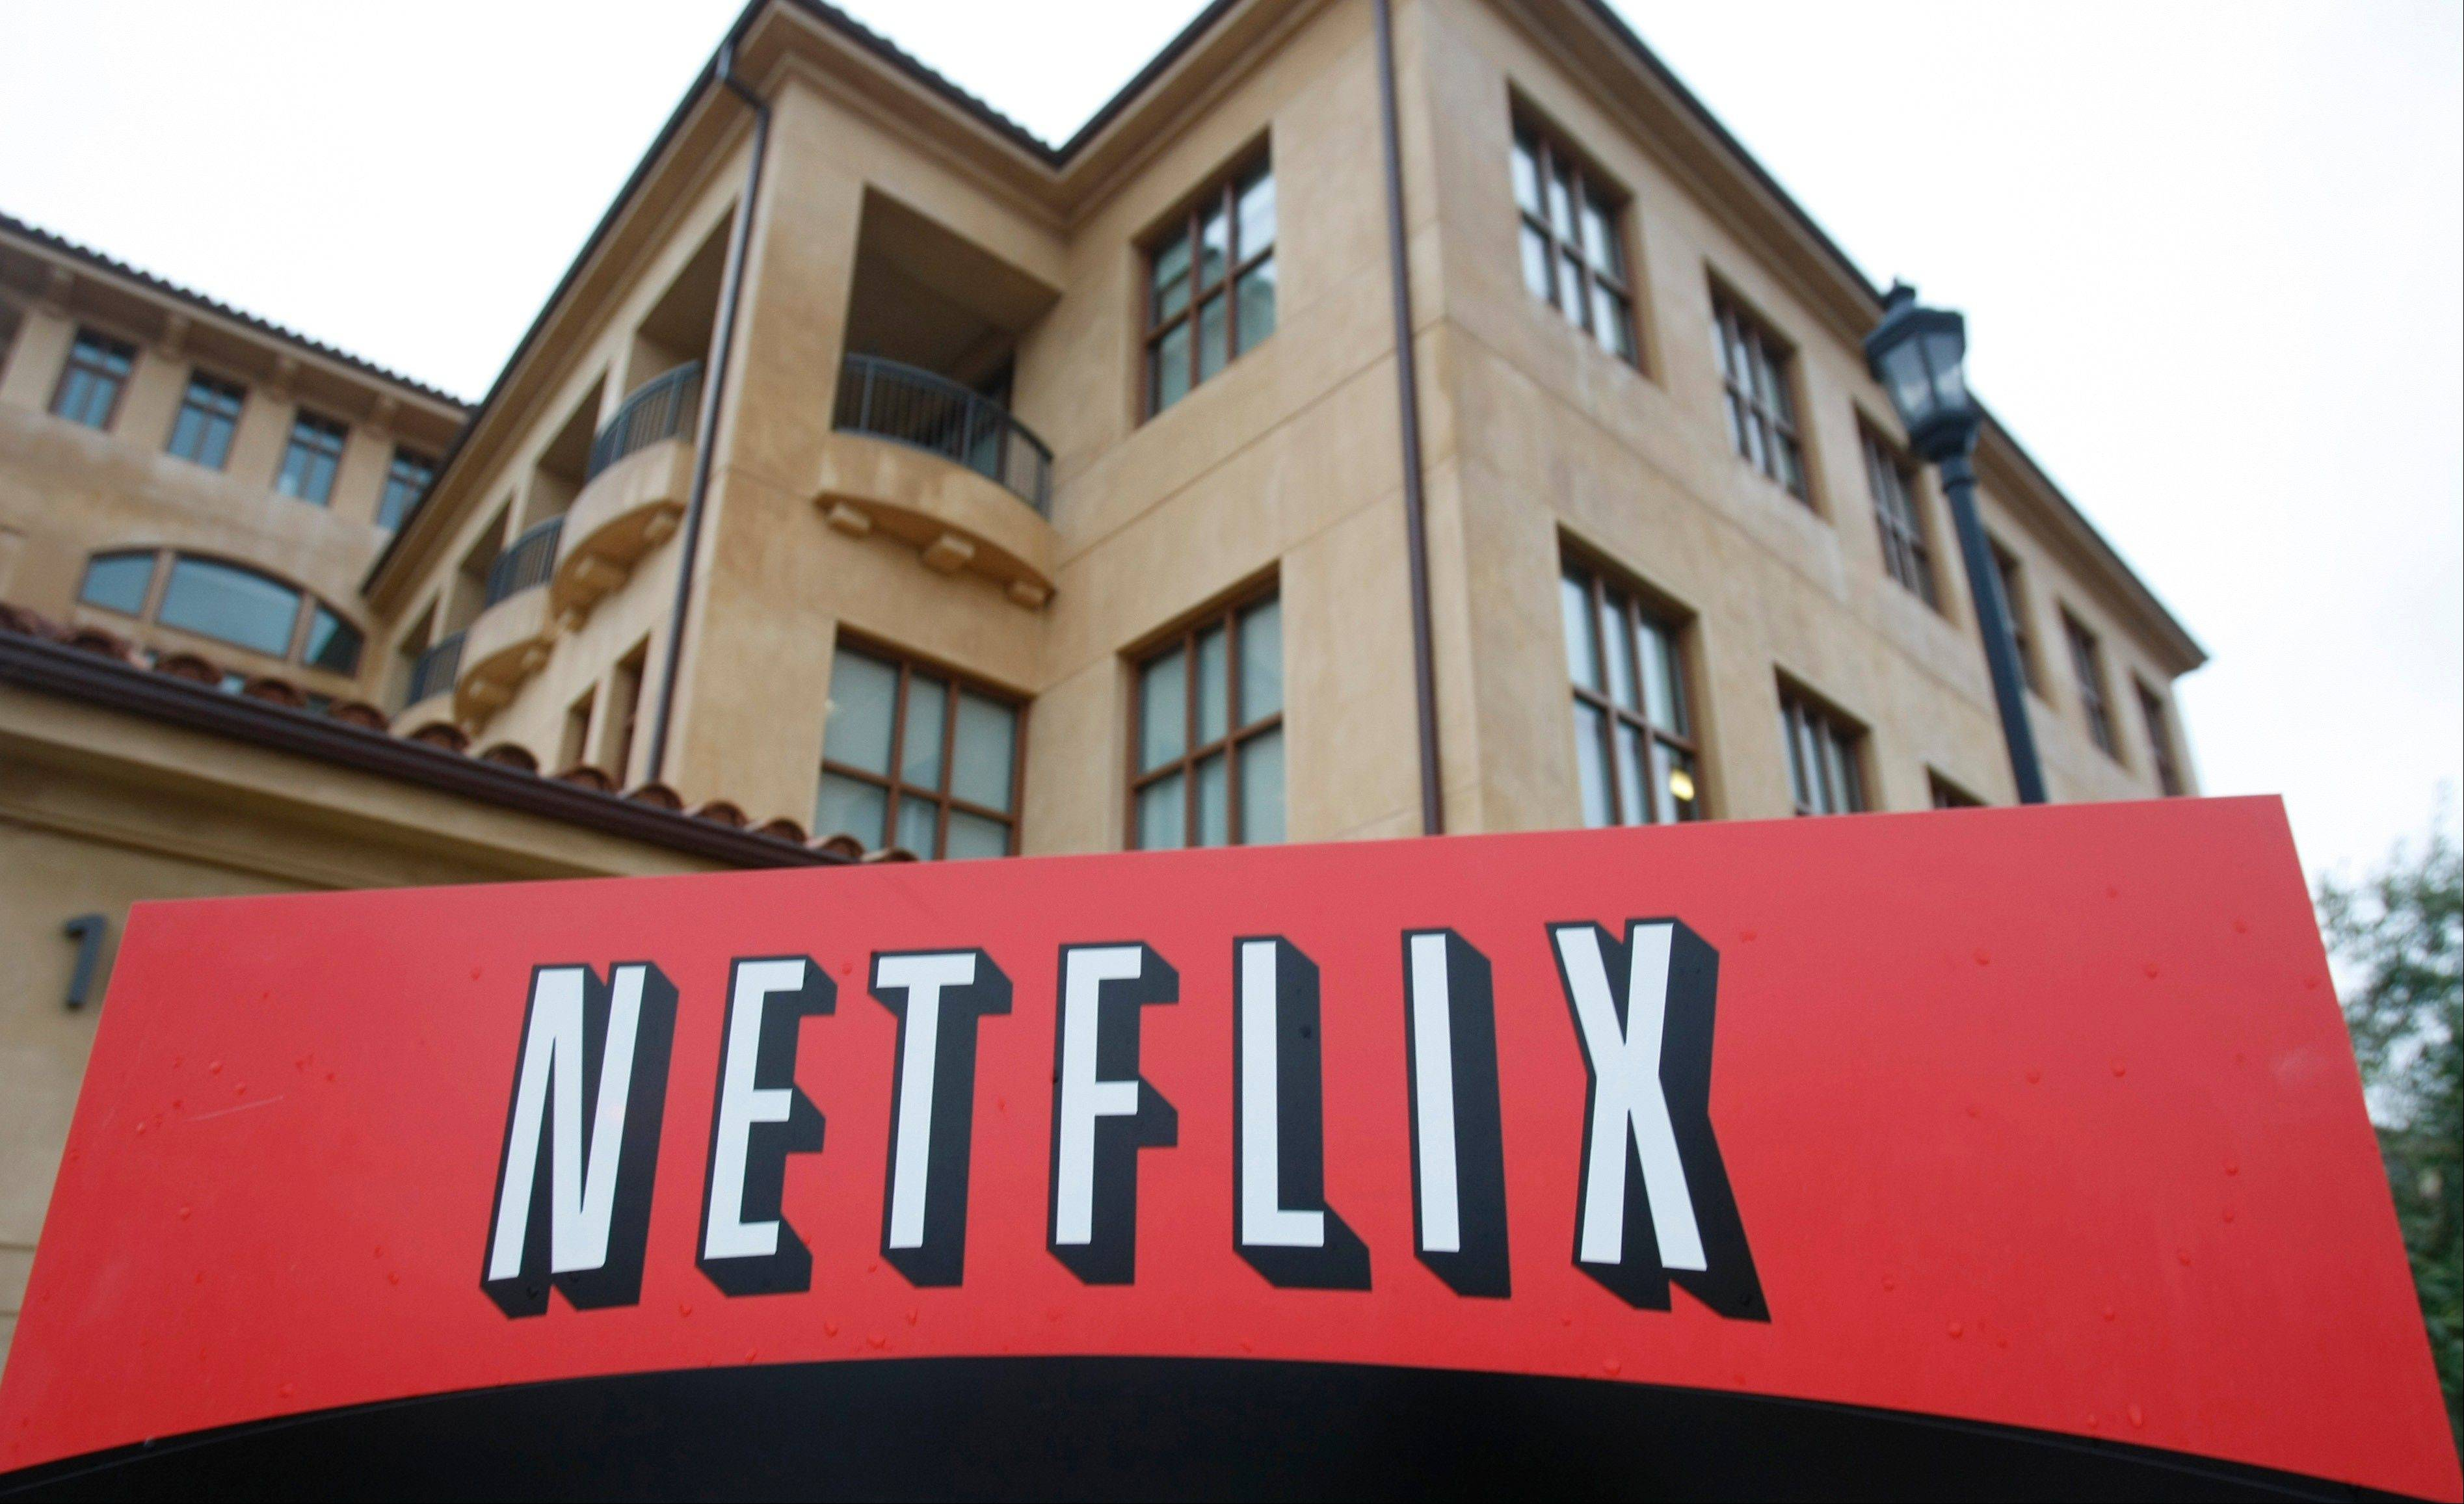 Netflix's earnings quadrupled as its line-up of original programming helped the Internet video subscription service attract 1.3 million more U.S. subscribers during its latest quarter.